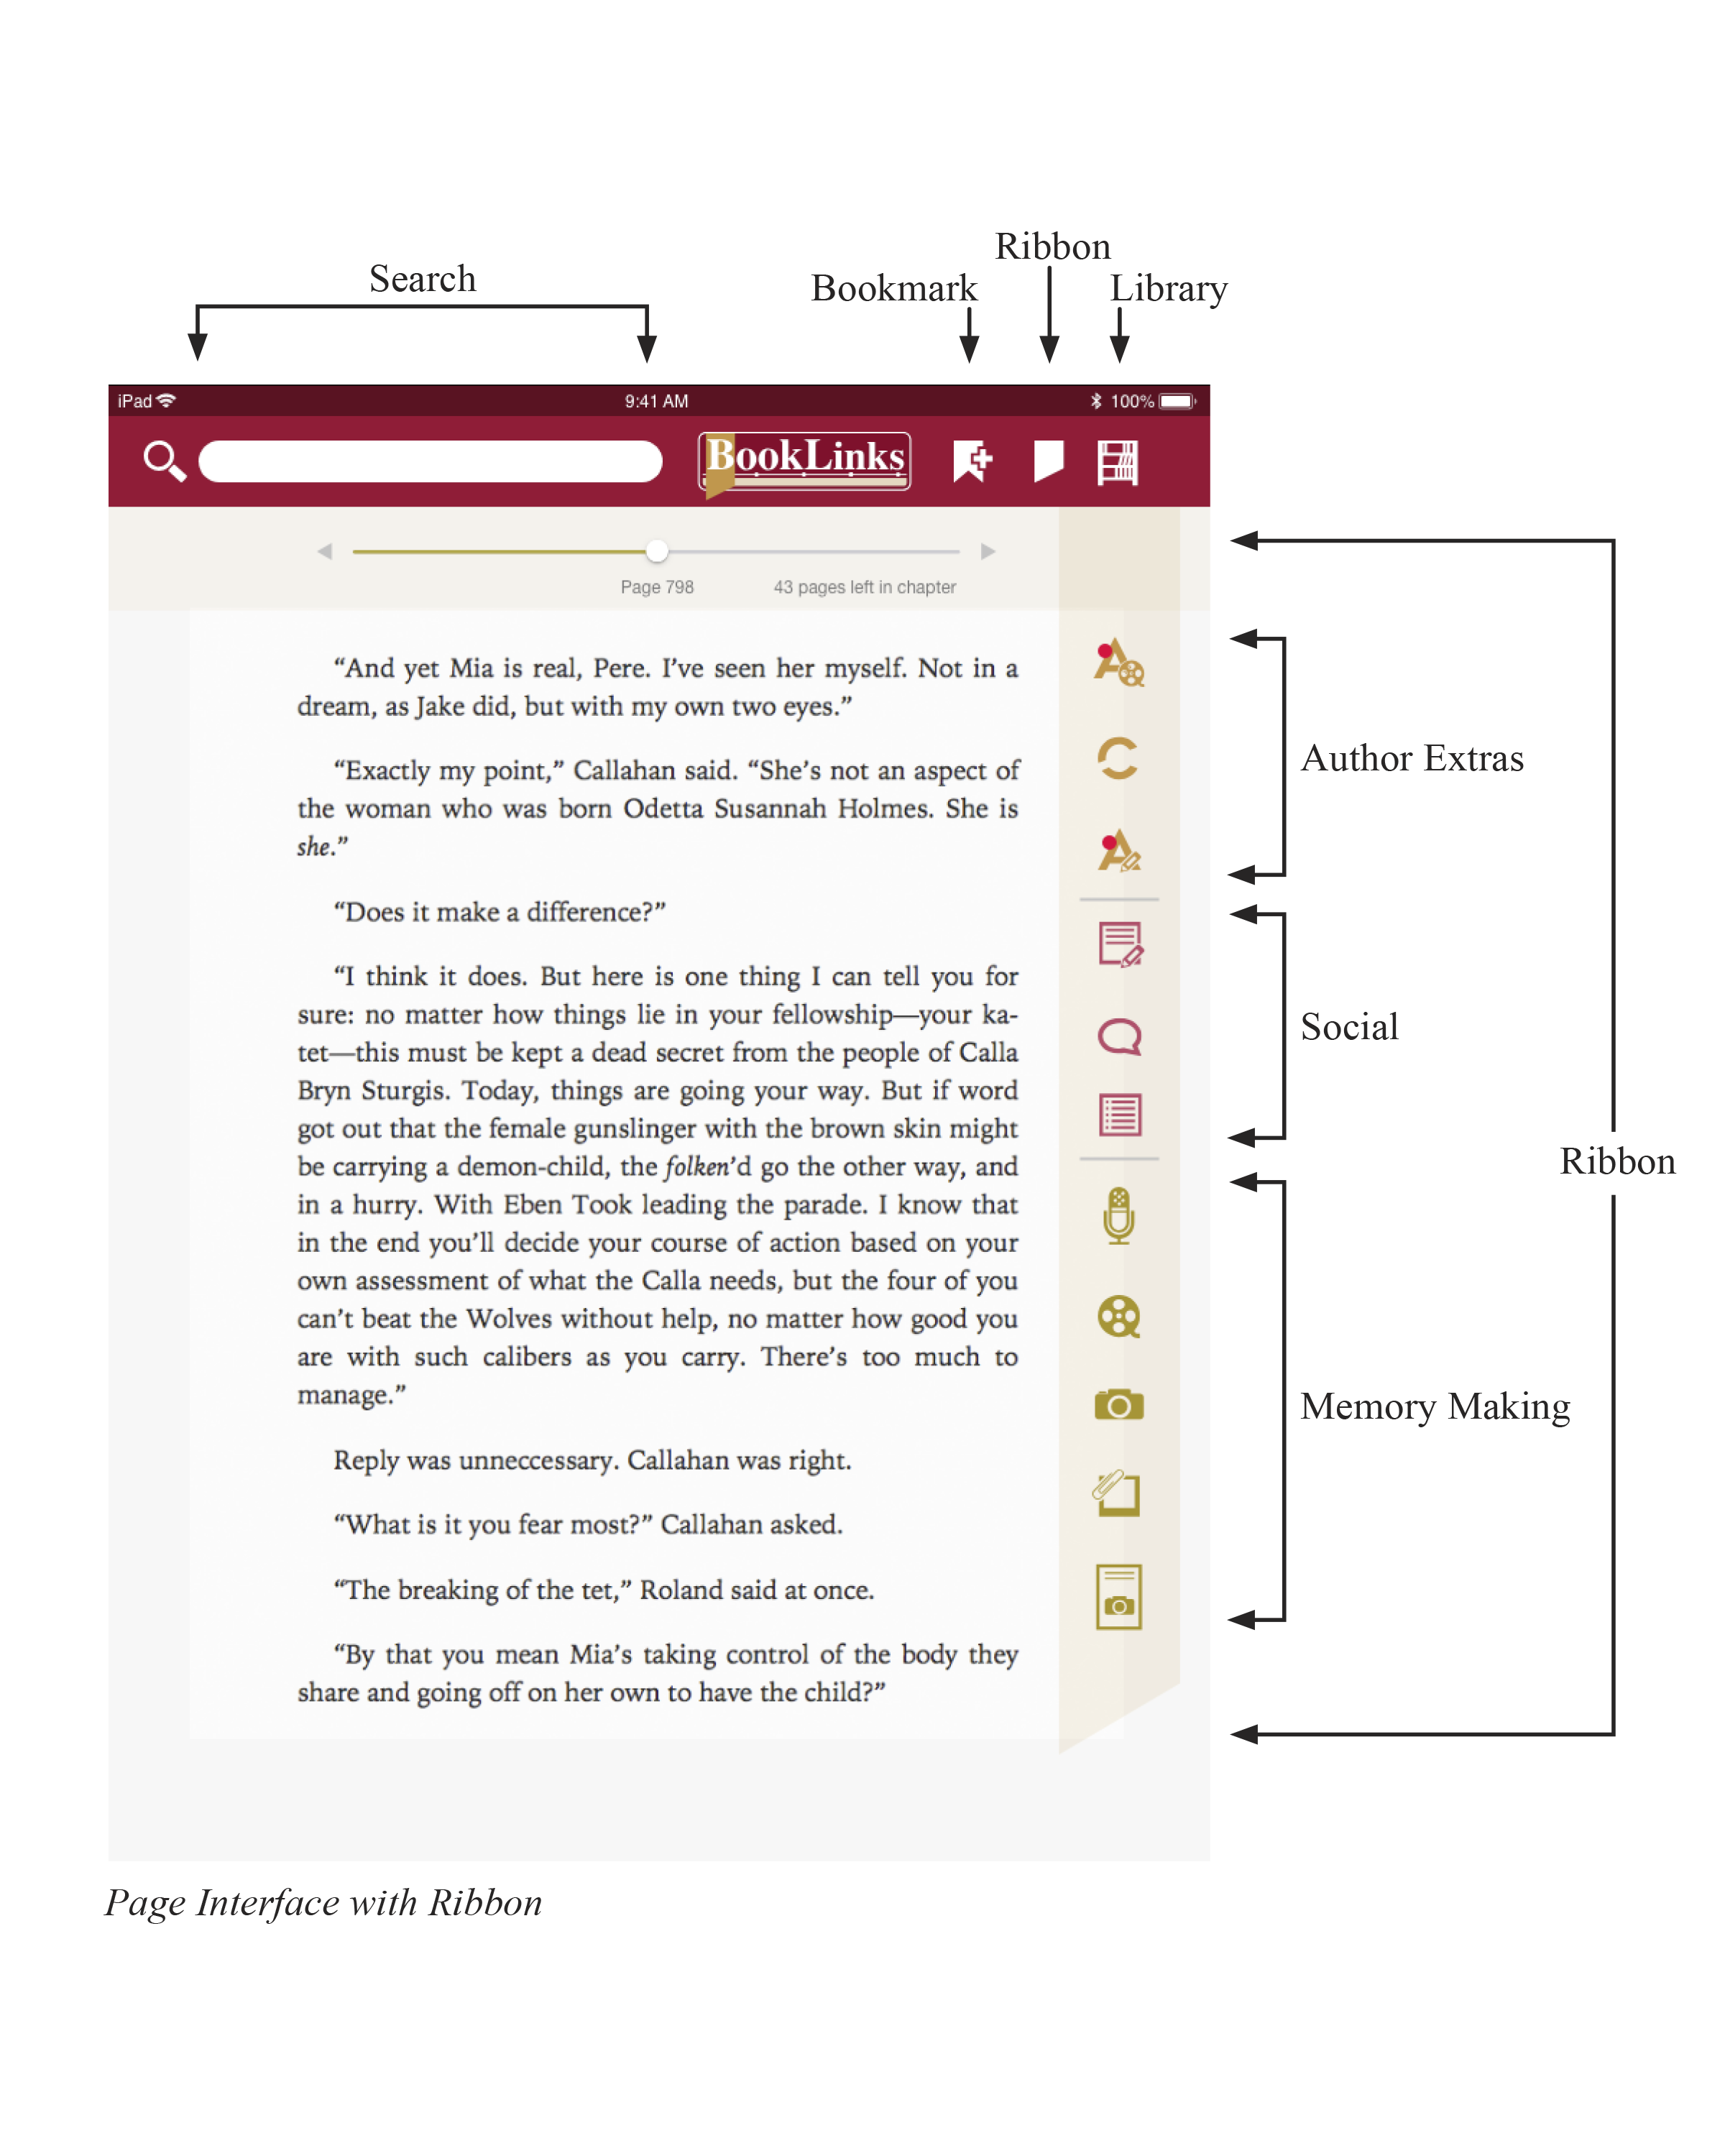 Page Interface with Ribbon